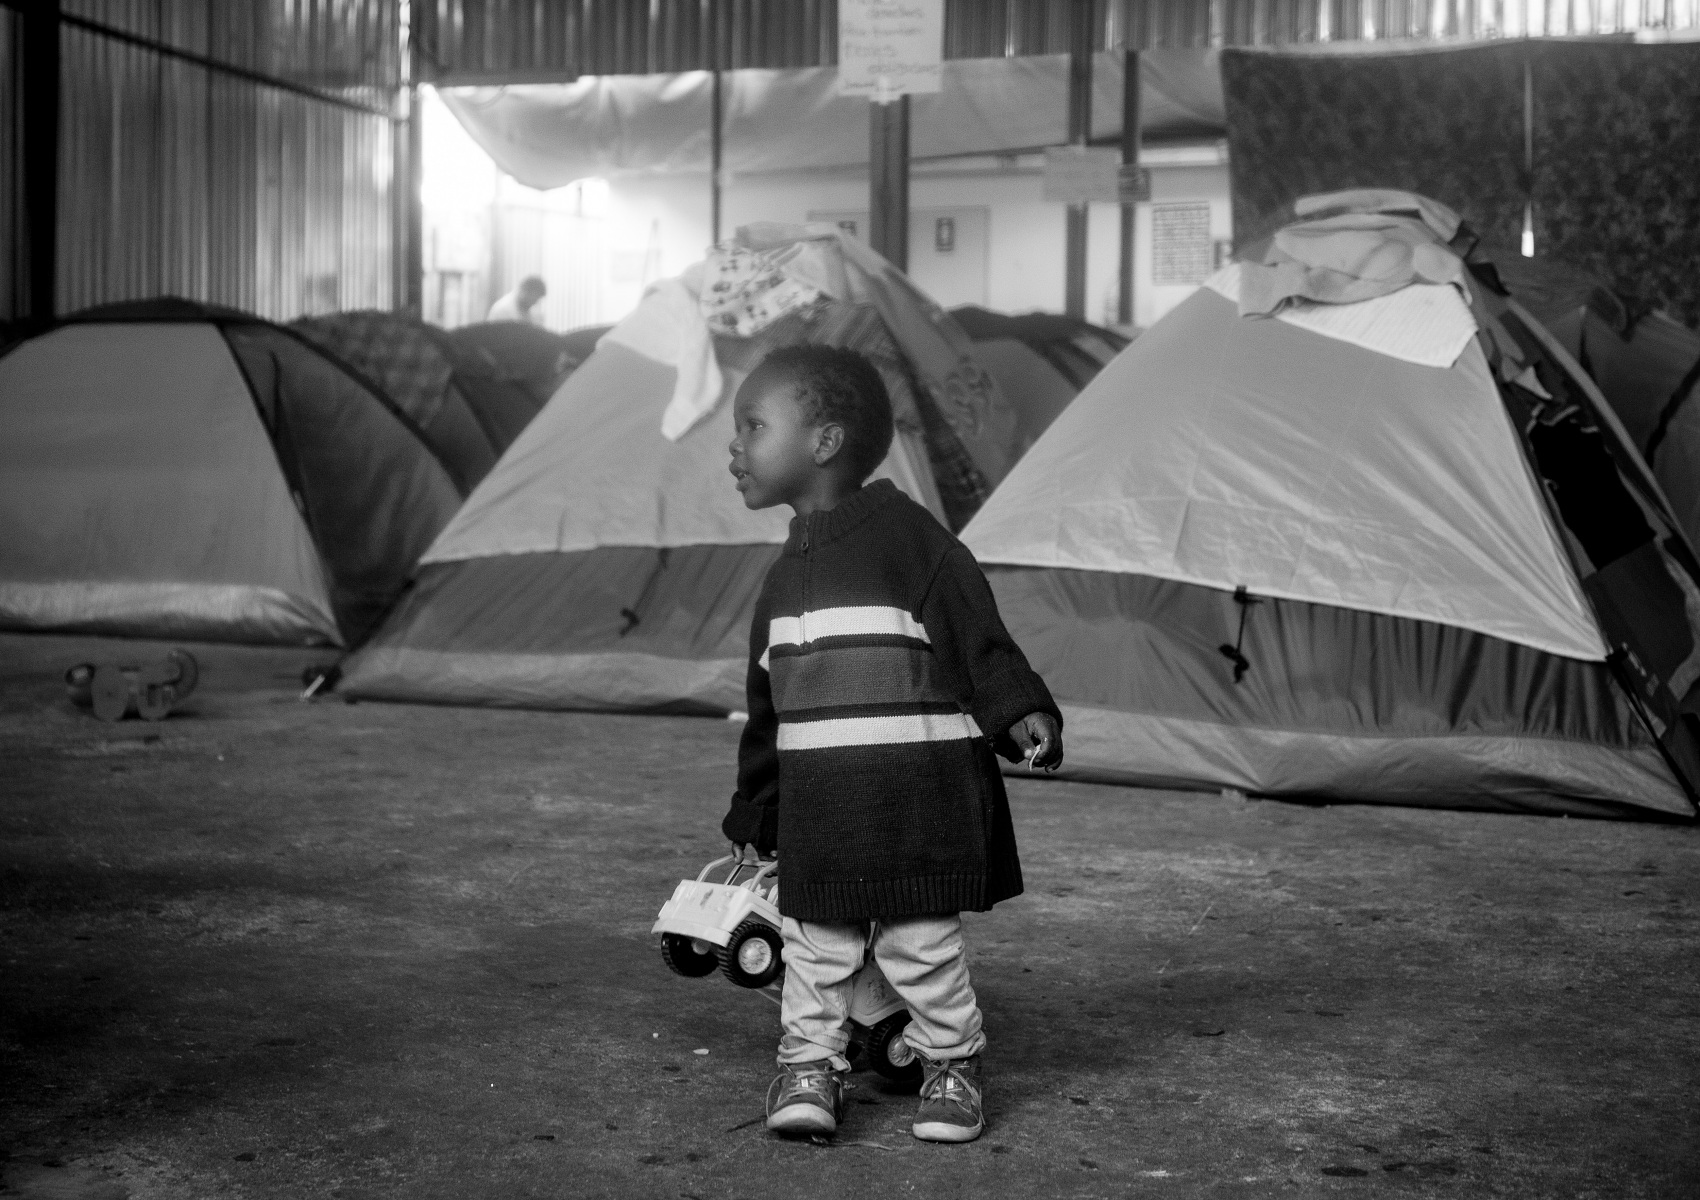 A population of Haitians, including this child playing with his toy truck, have traveled to Tijuana hoping for their number to be called to obtain asylum in the United States. They are waiting at the Benito Juarez shelter in Tijuana.